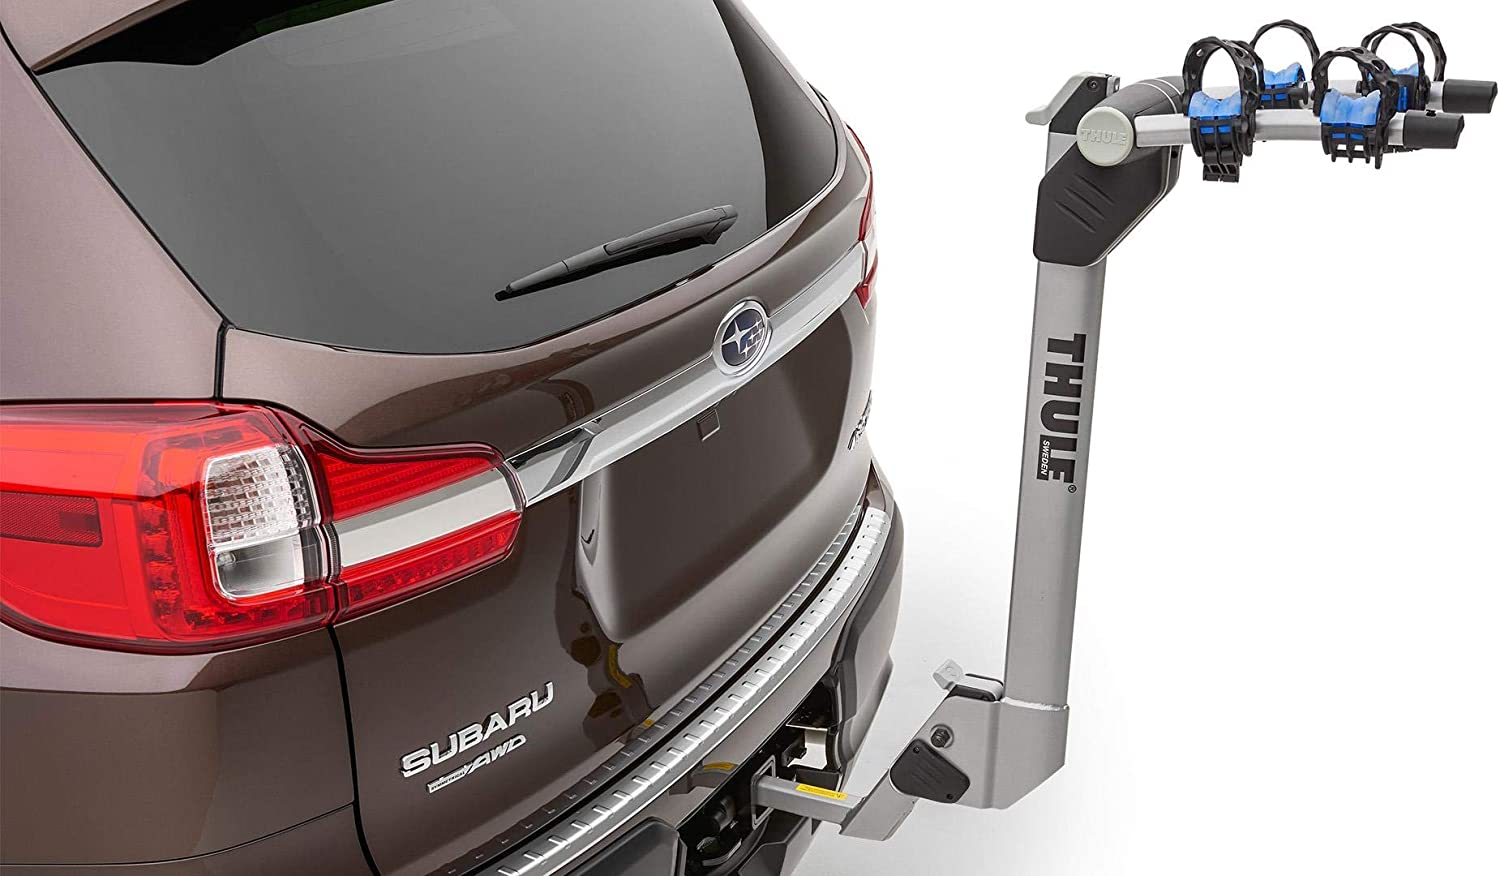 Best Bike Rack For A Subaru Outback